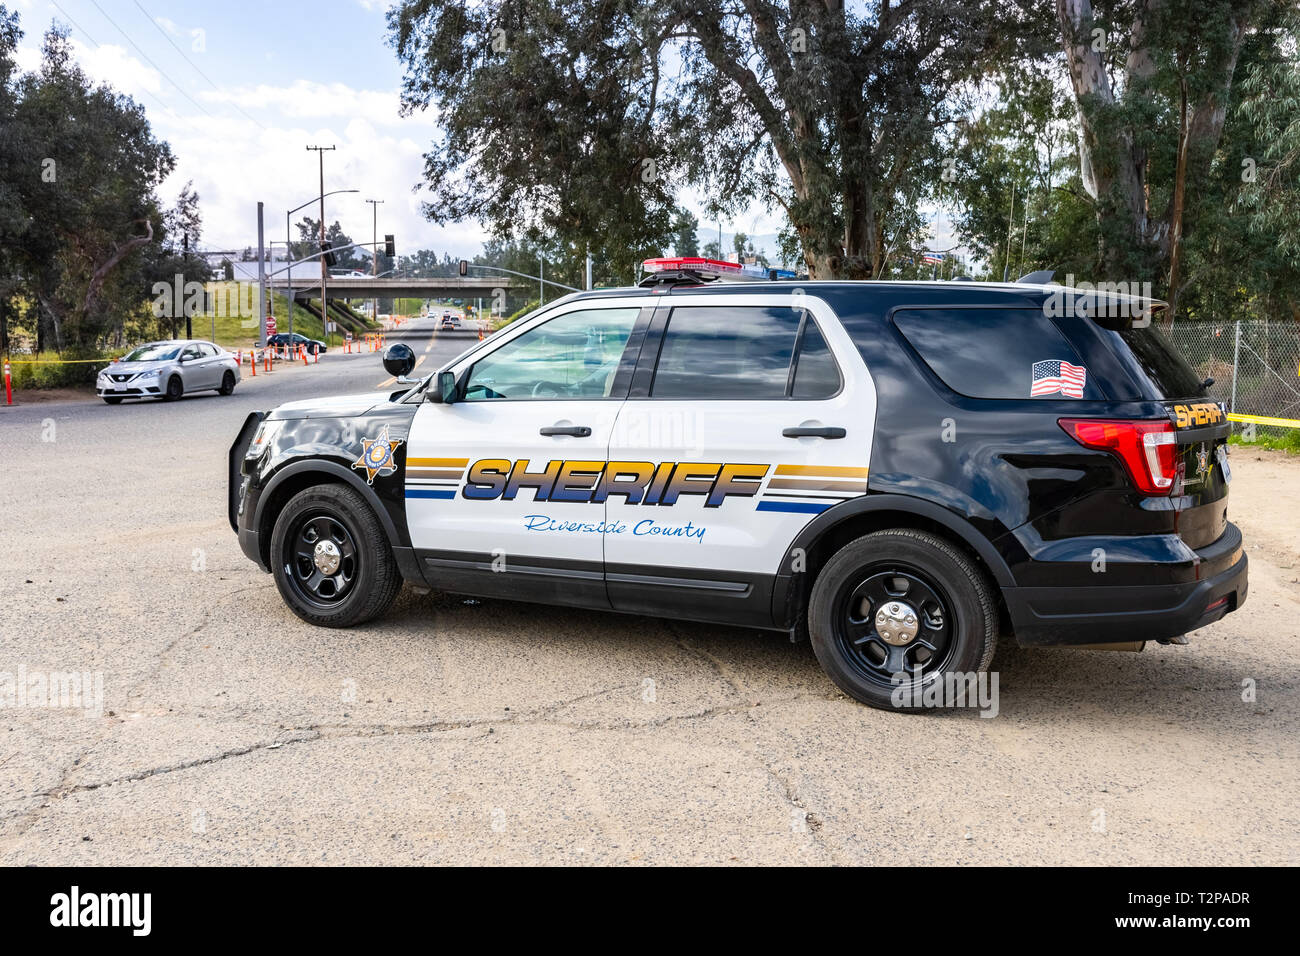 March 20, 2019 Lake Elsinore / CA / USA - Riverside County police car parked at the Walker Canyon trailhead - Stock Image